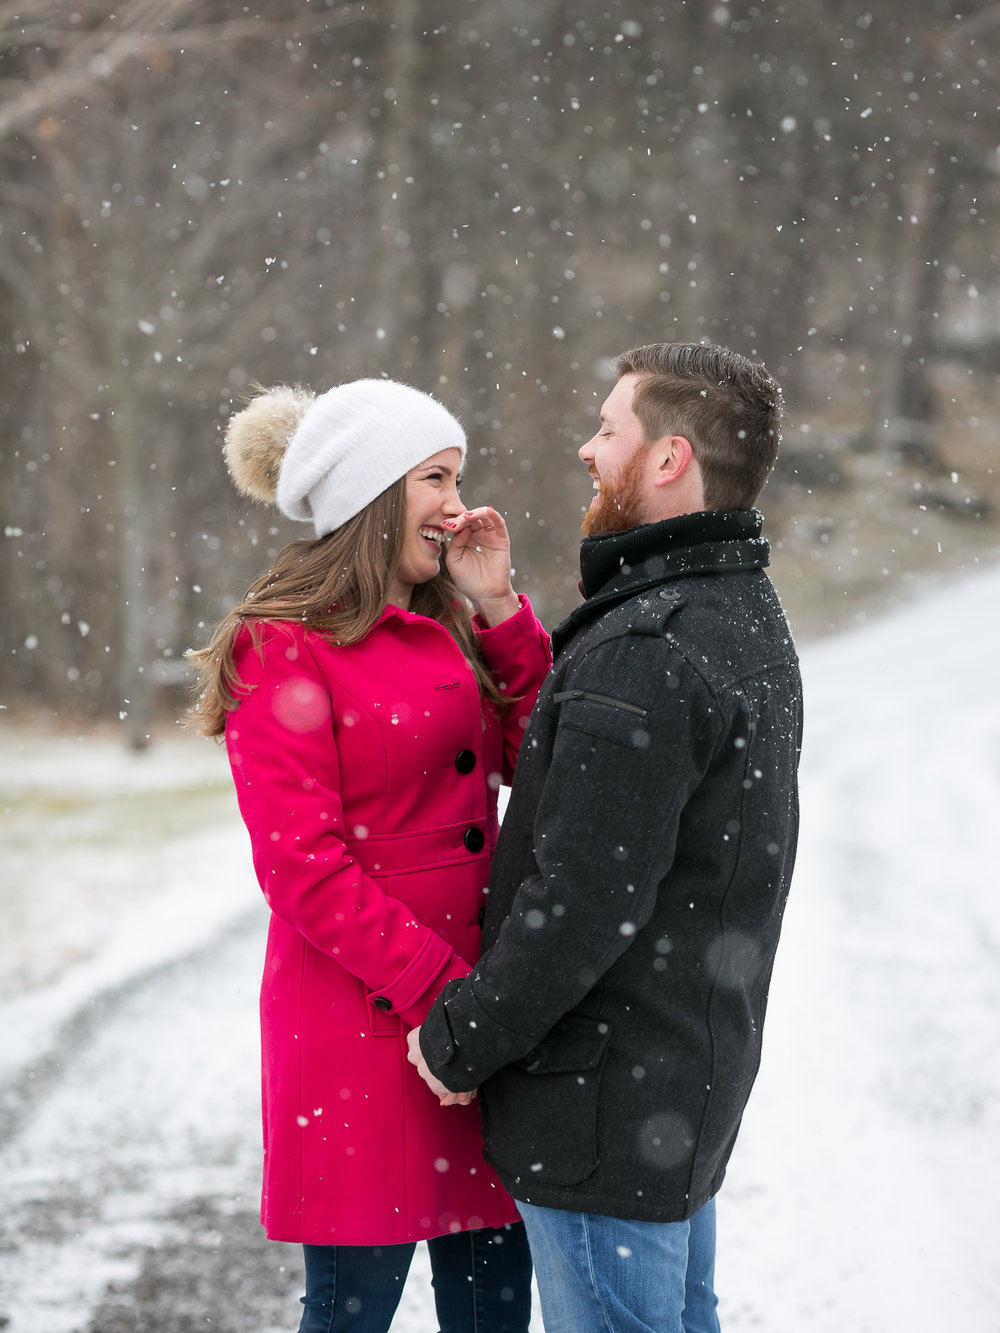 Sara-Chris-Winter-Engagement-Session-36.jpg